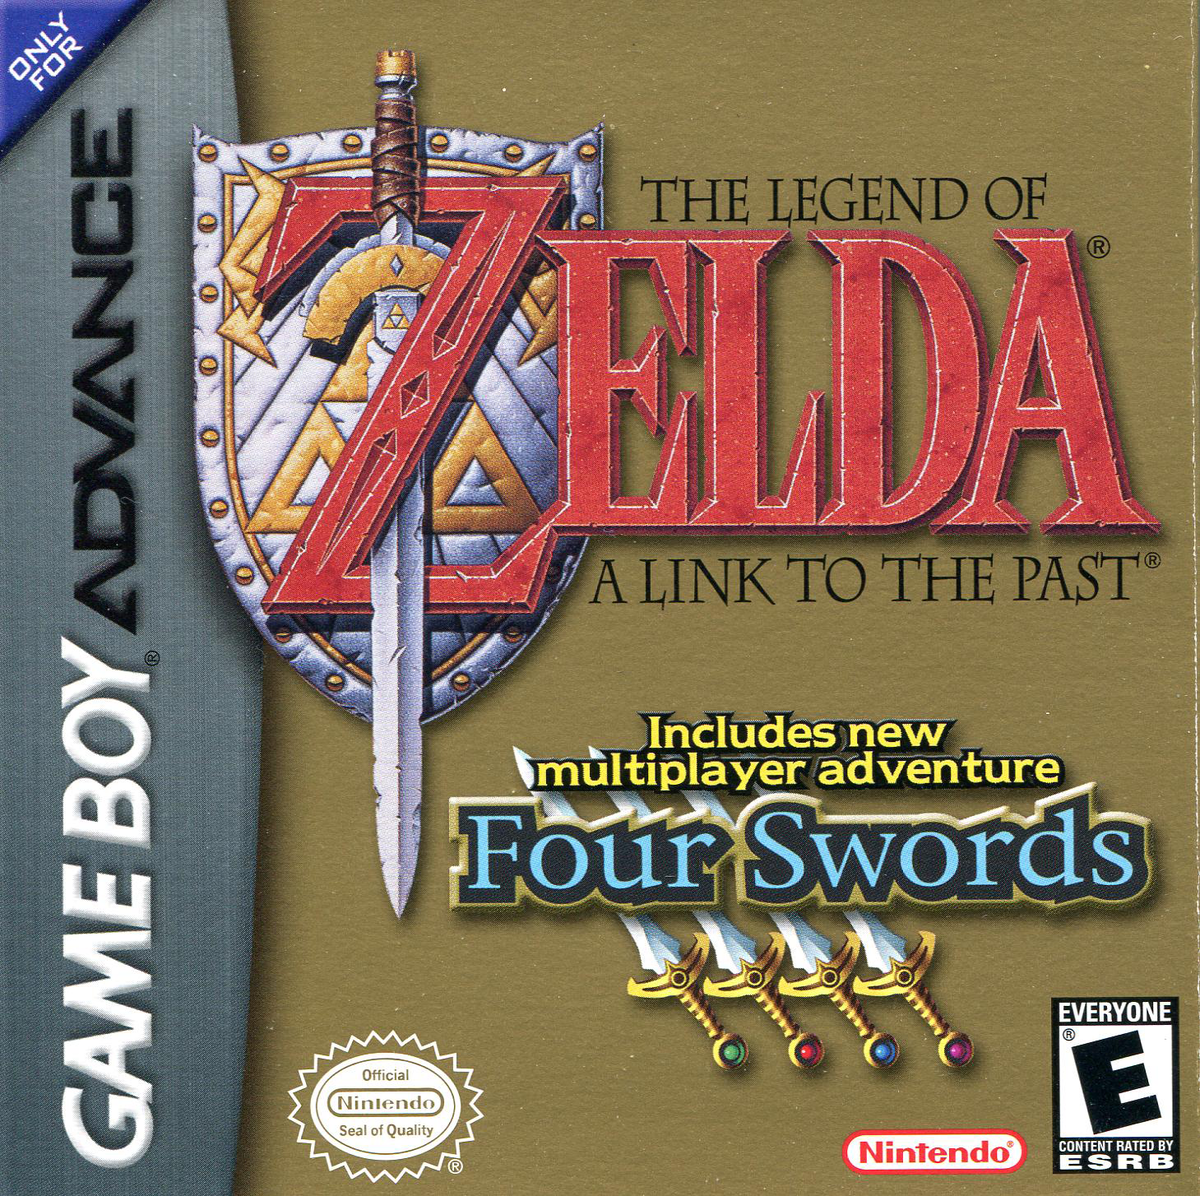 The Legend of Zelda: A Link to the Past & Four Swords - Zelda Wiki